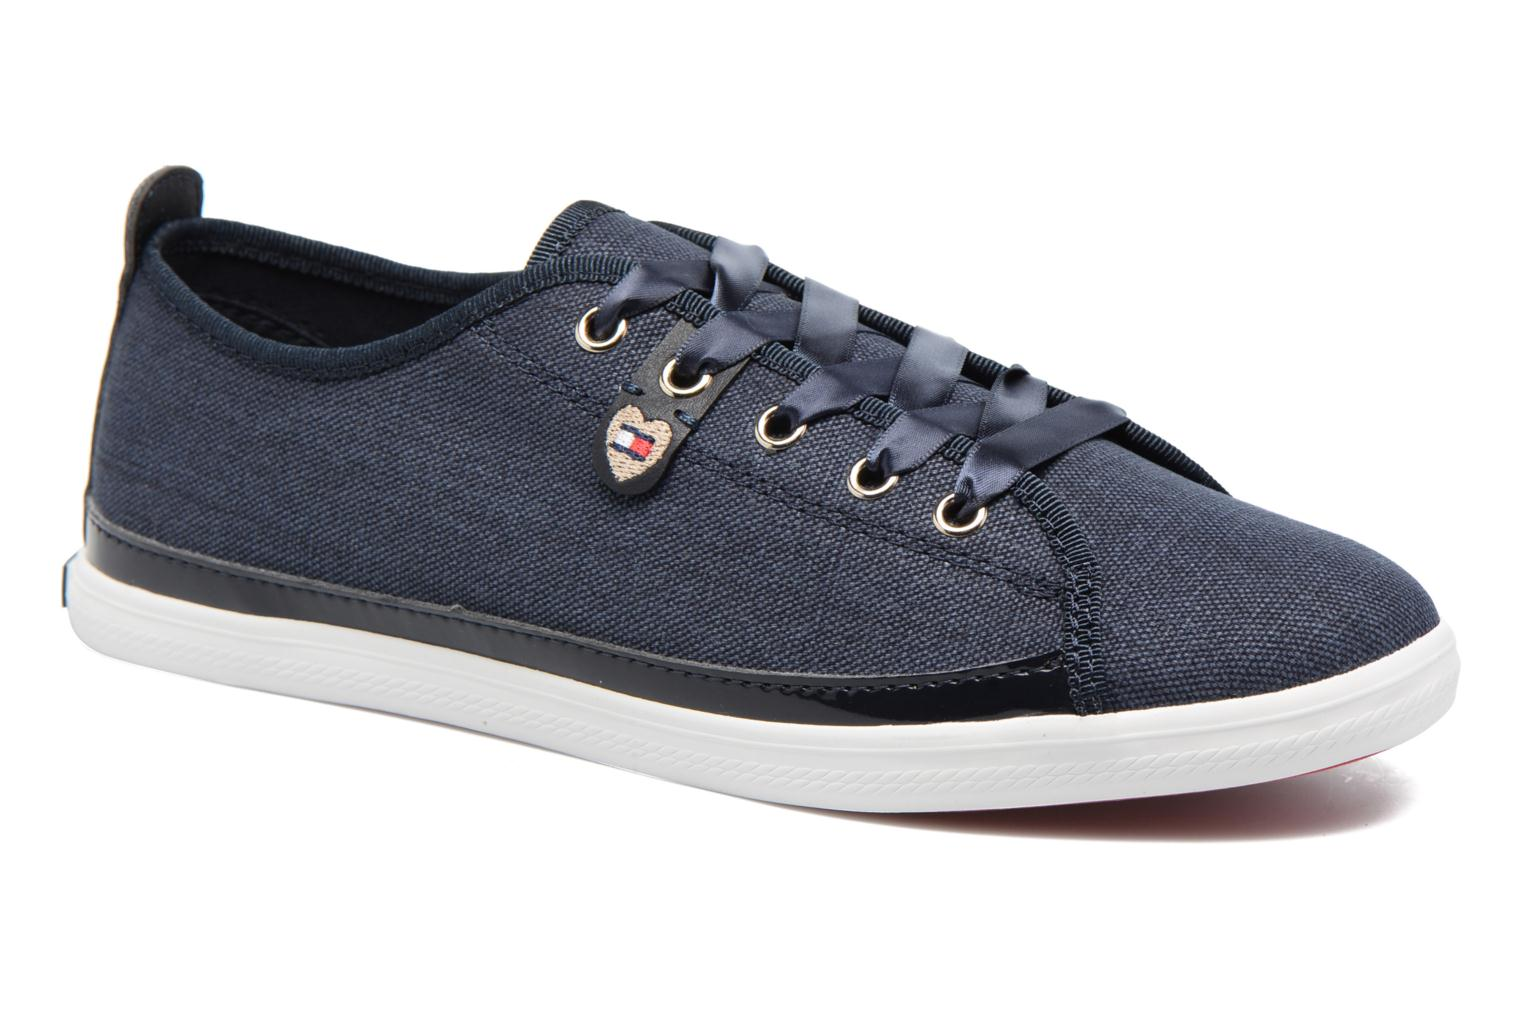 sneakers-keira-d1-by-tommy-hilfiger